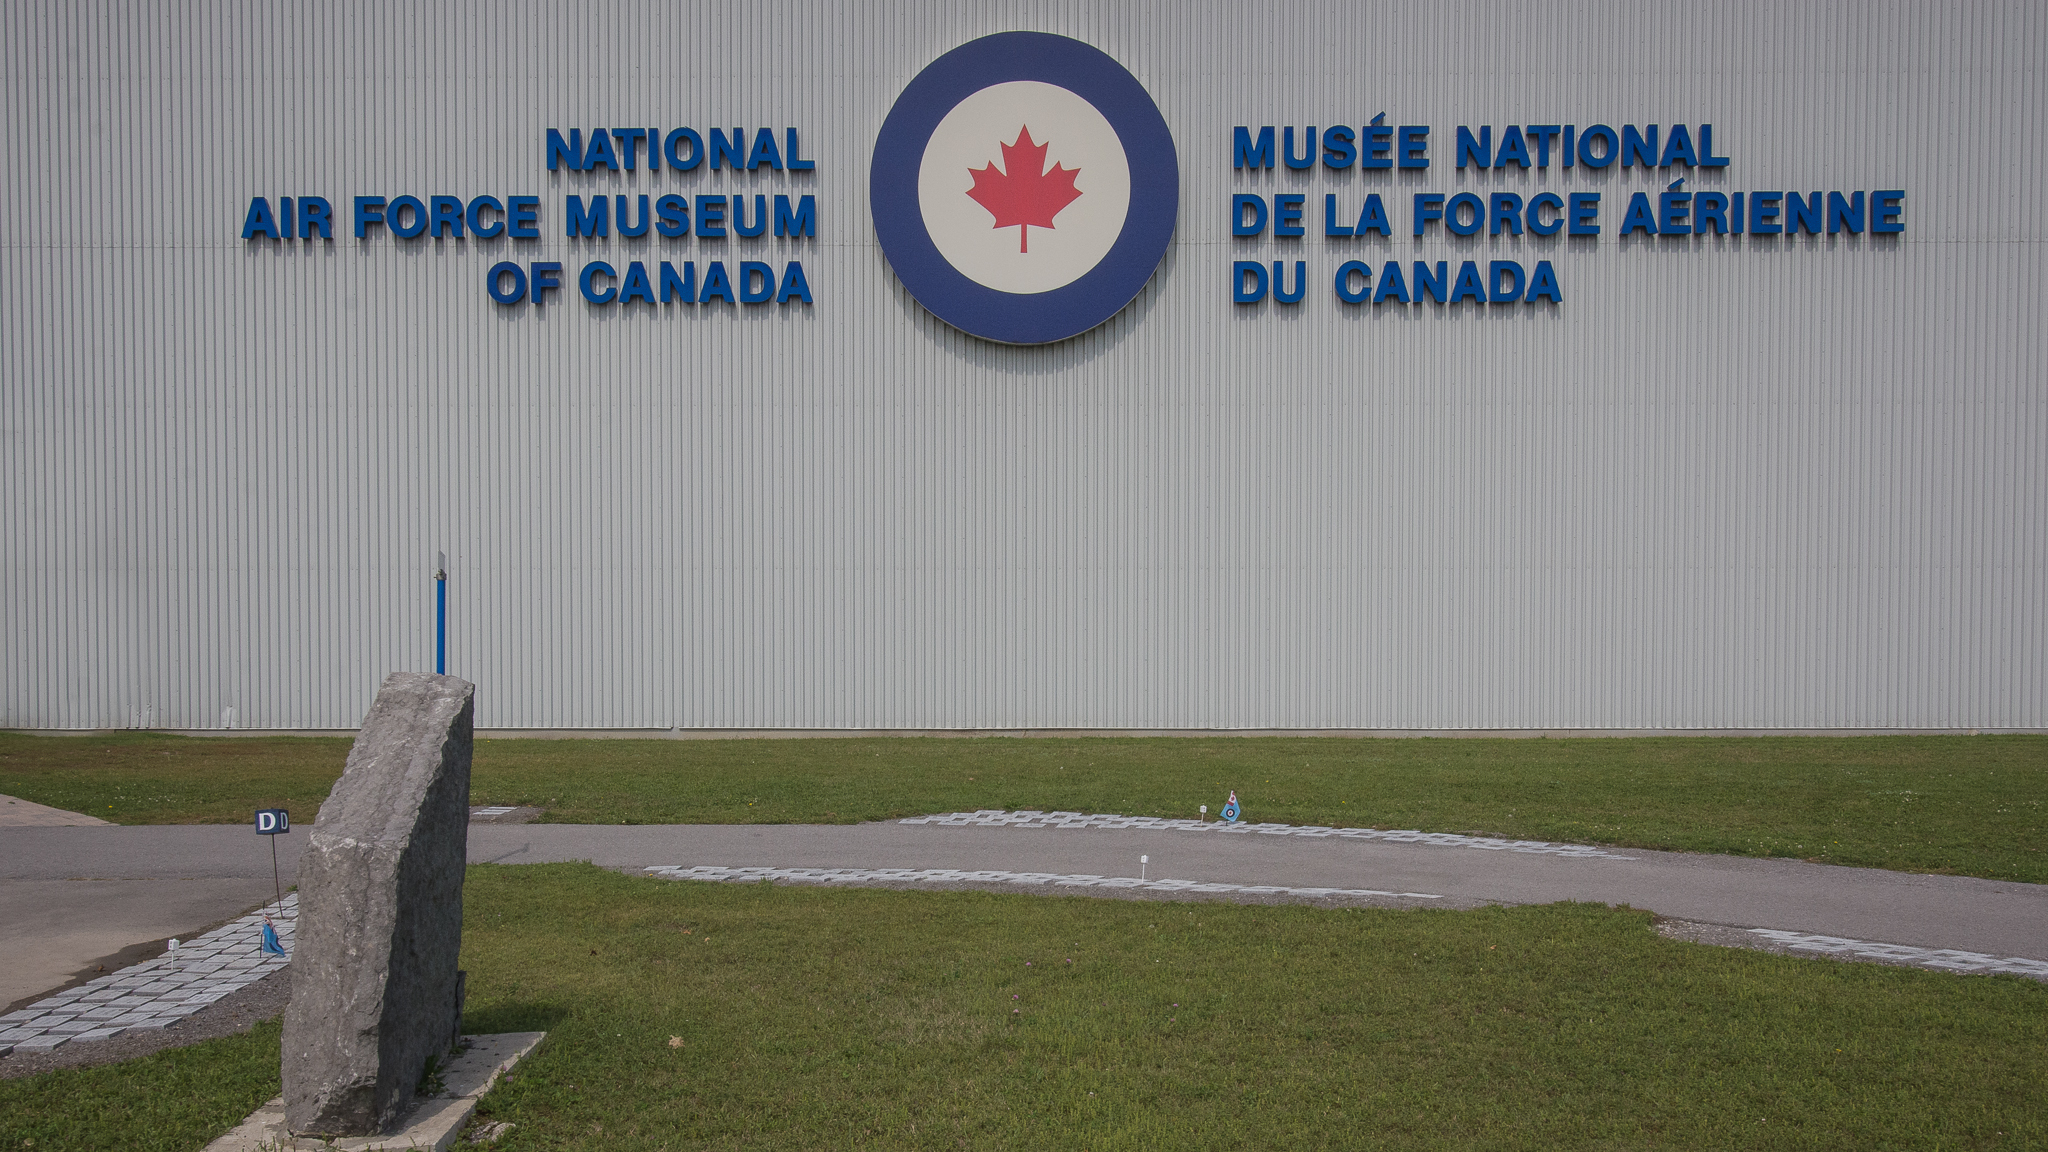 National Air Force Museum of Canada(1/800s, f/16, ISO400)